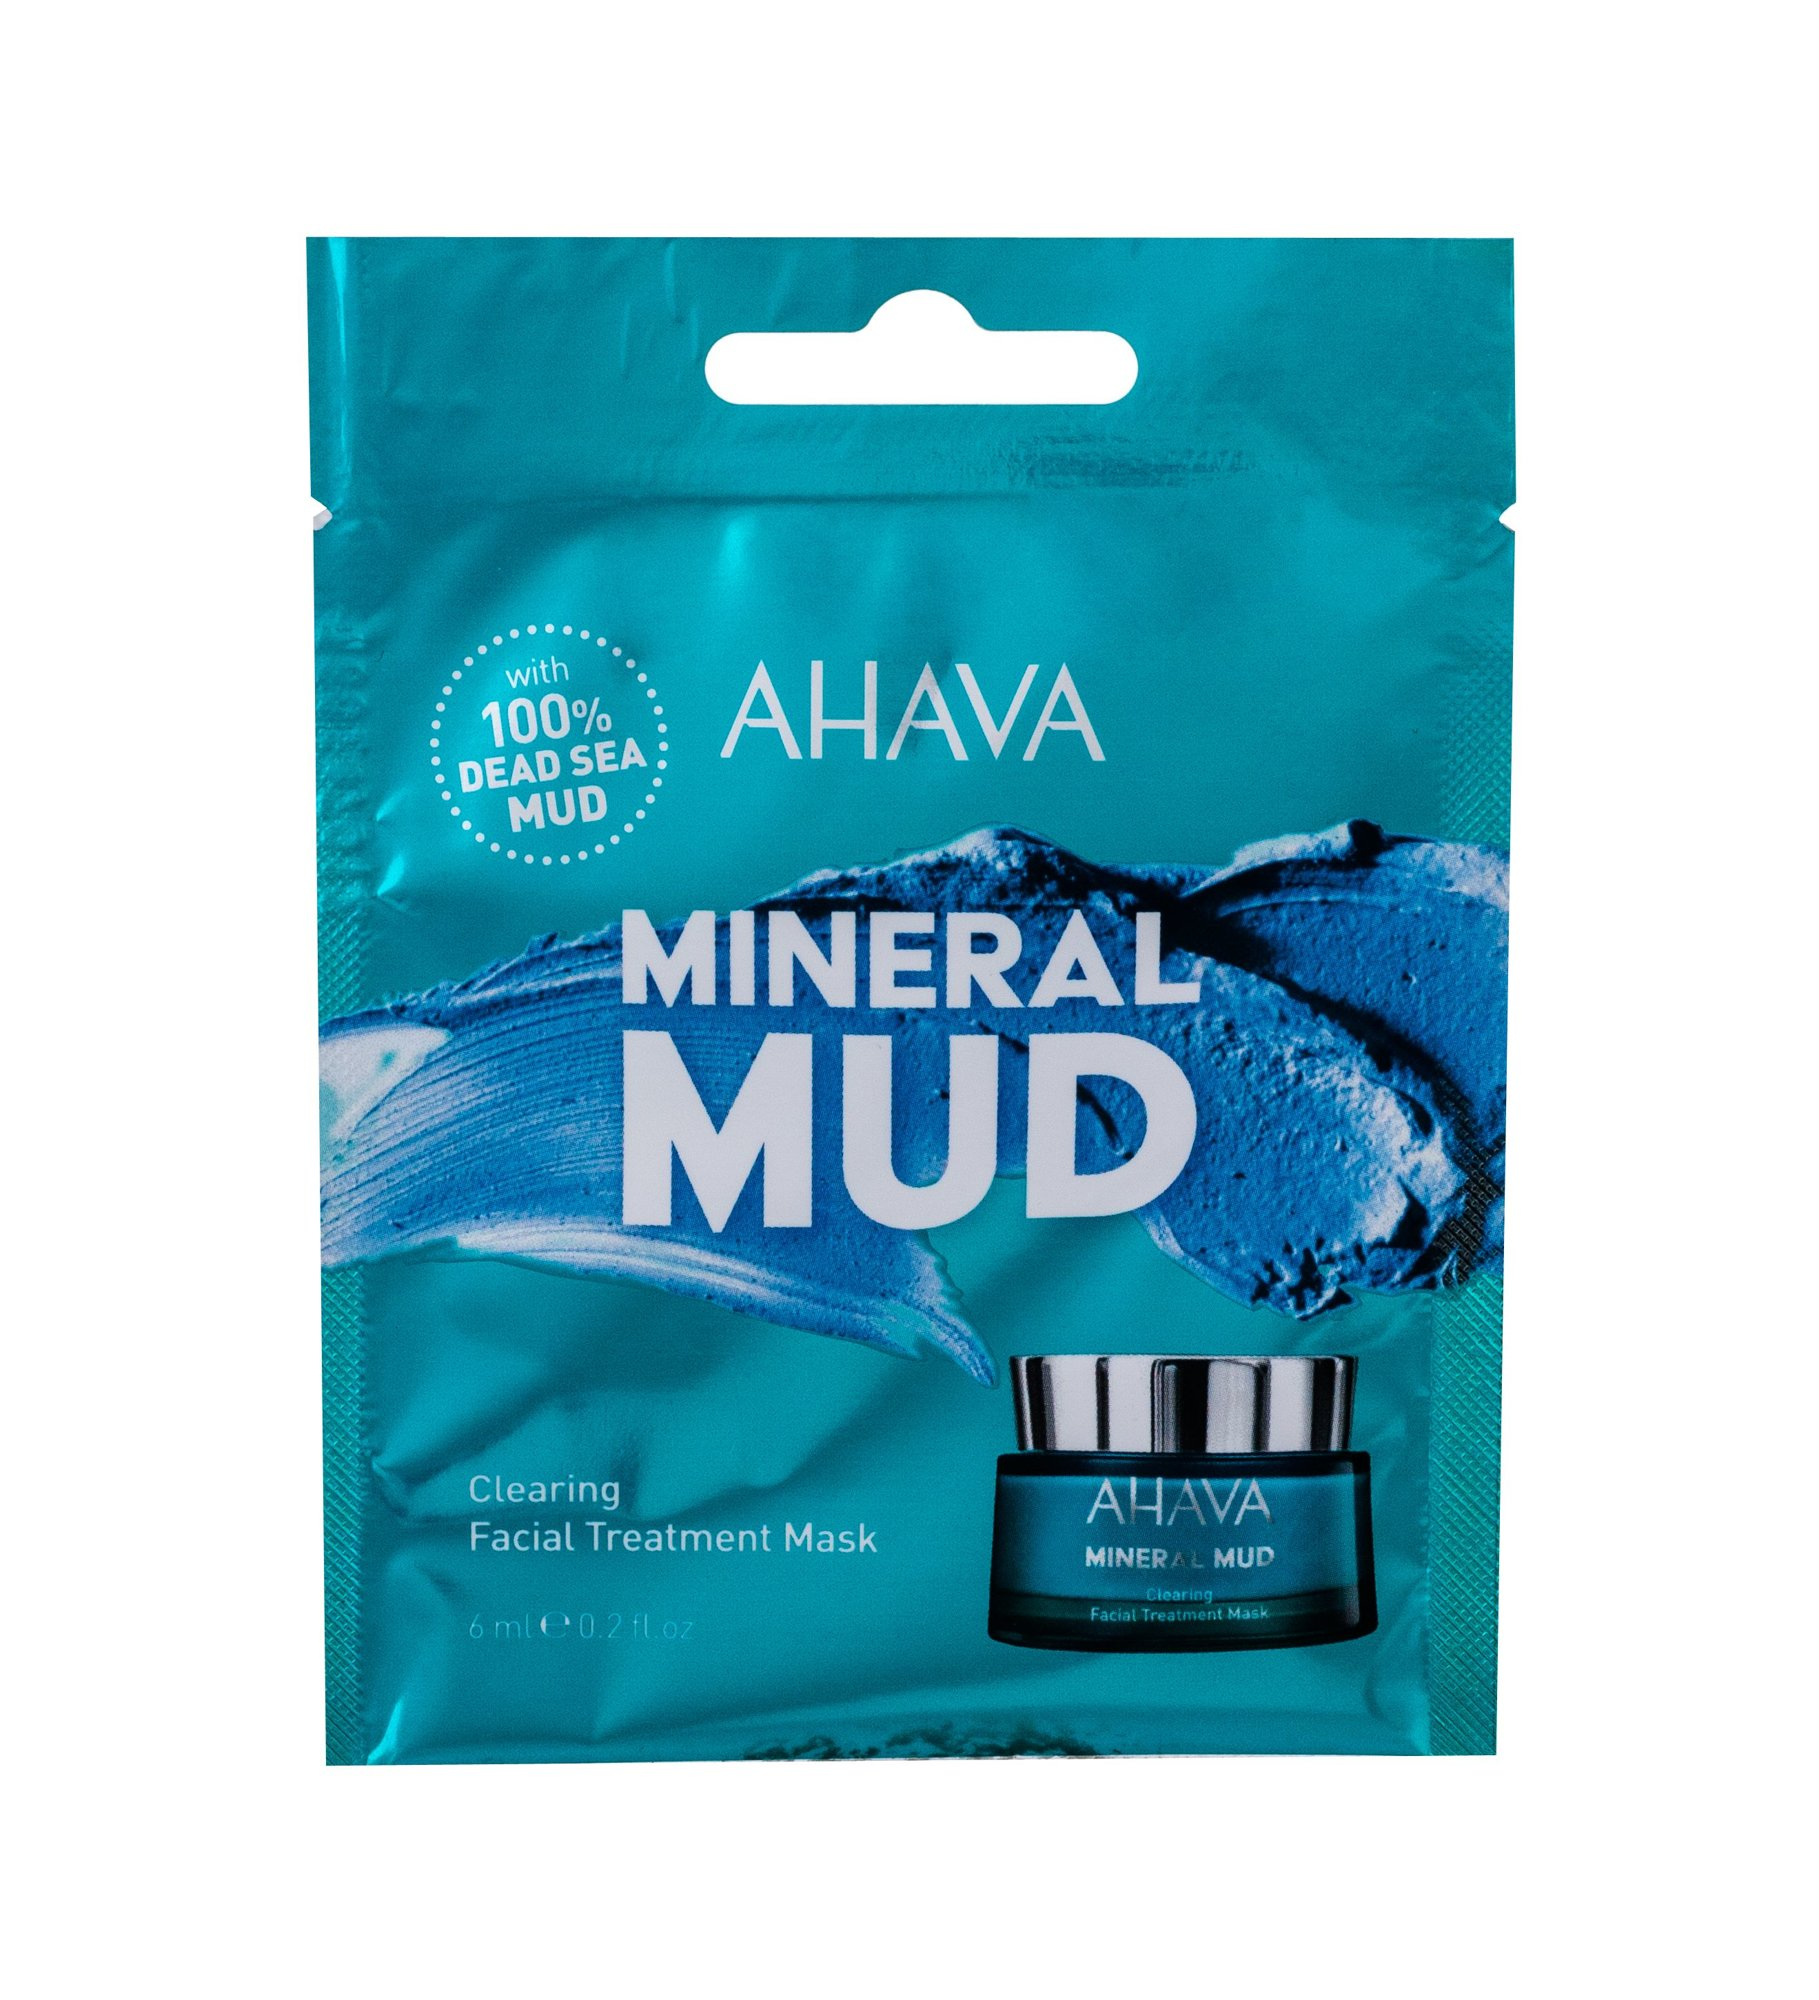 AHAVA Mineral Mud Face Mask 6ml  Clearing